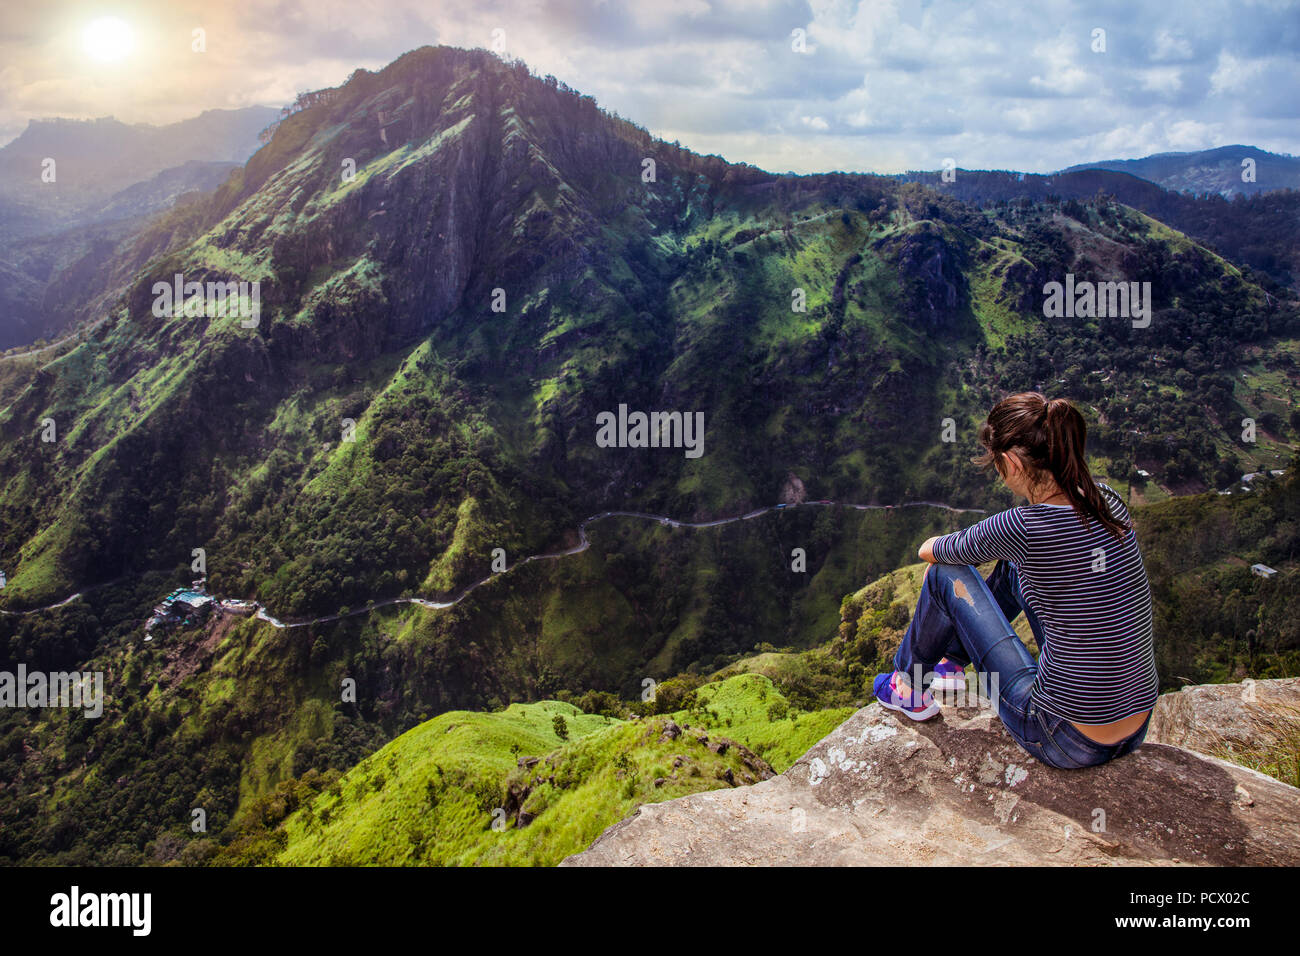 364c61d2e View over the mountains from Little Adams Peak seeing Ella Rock walkways  and mountainpeaks in sunrise